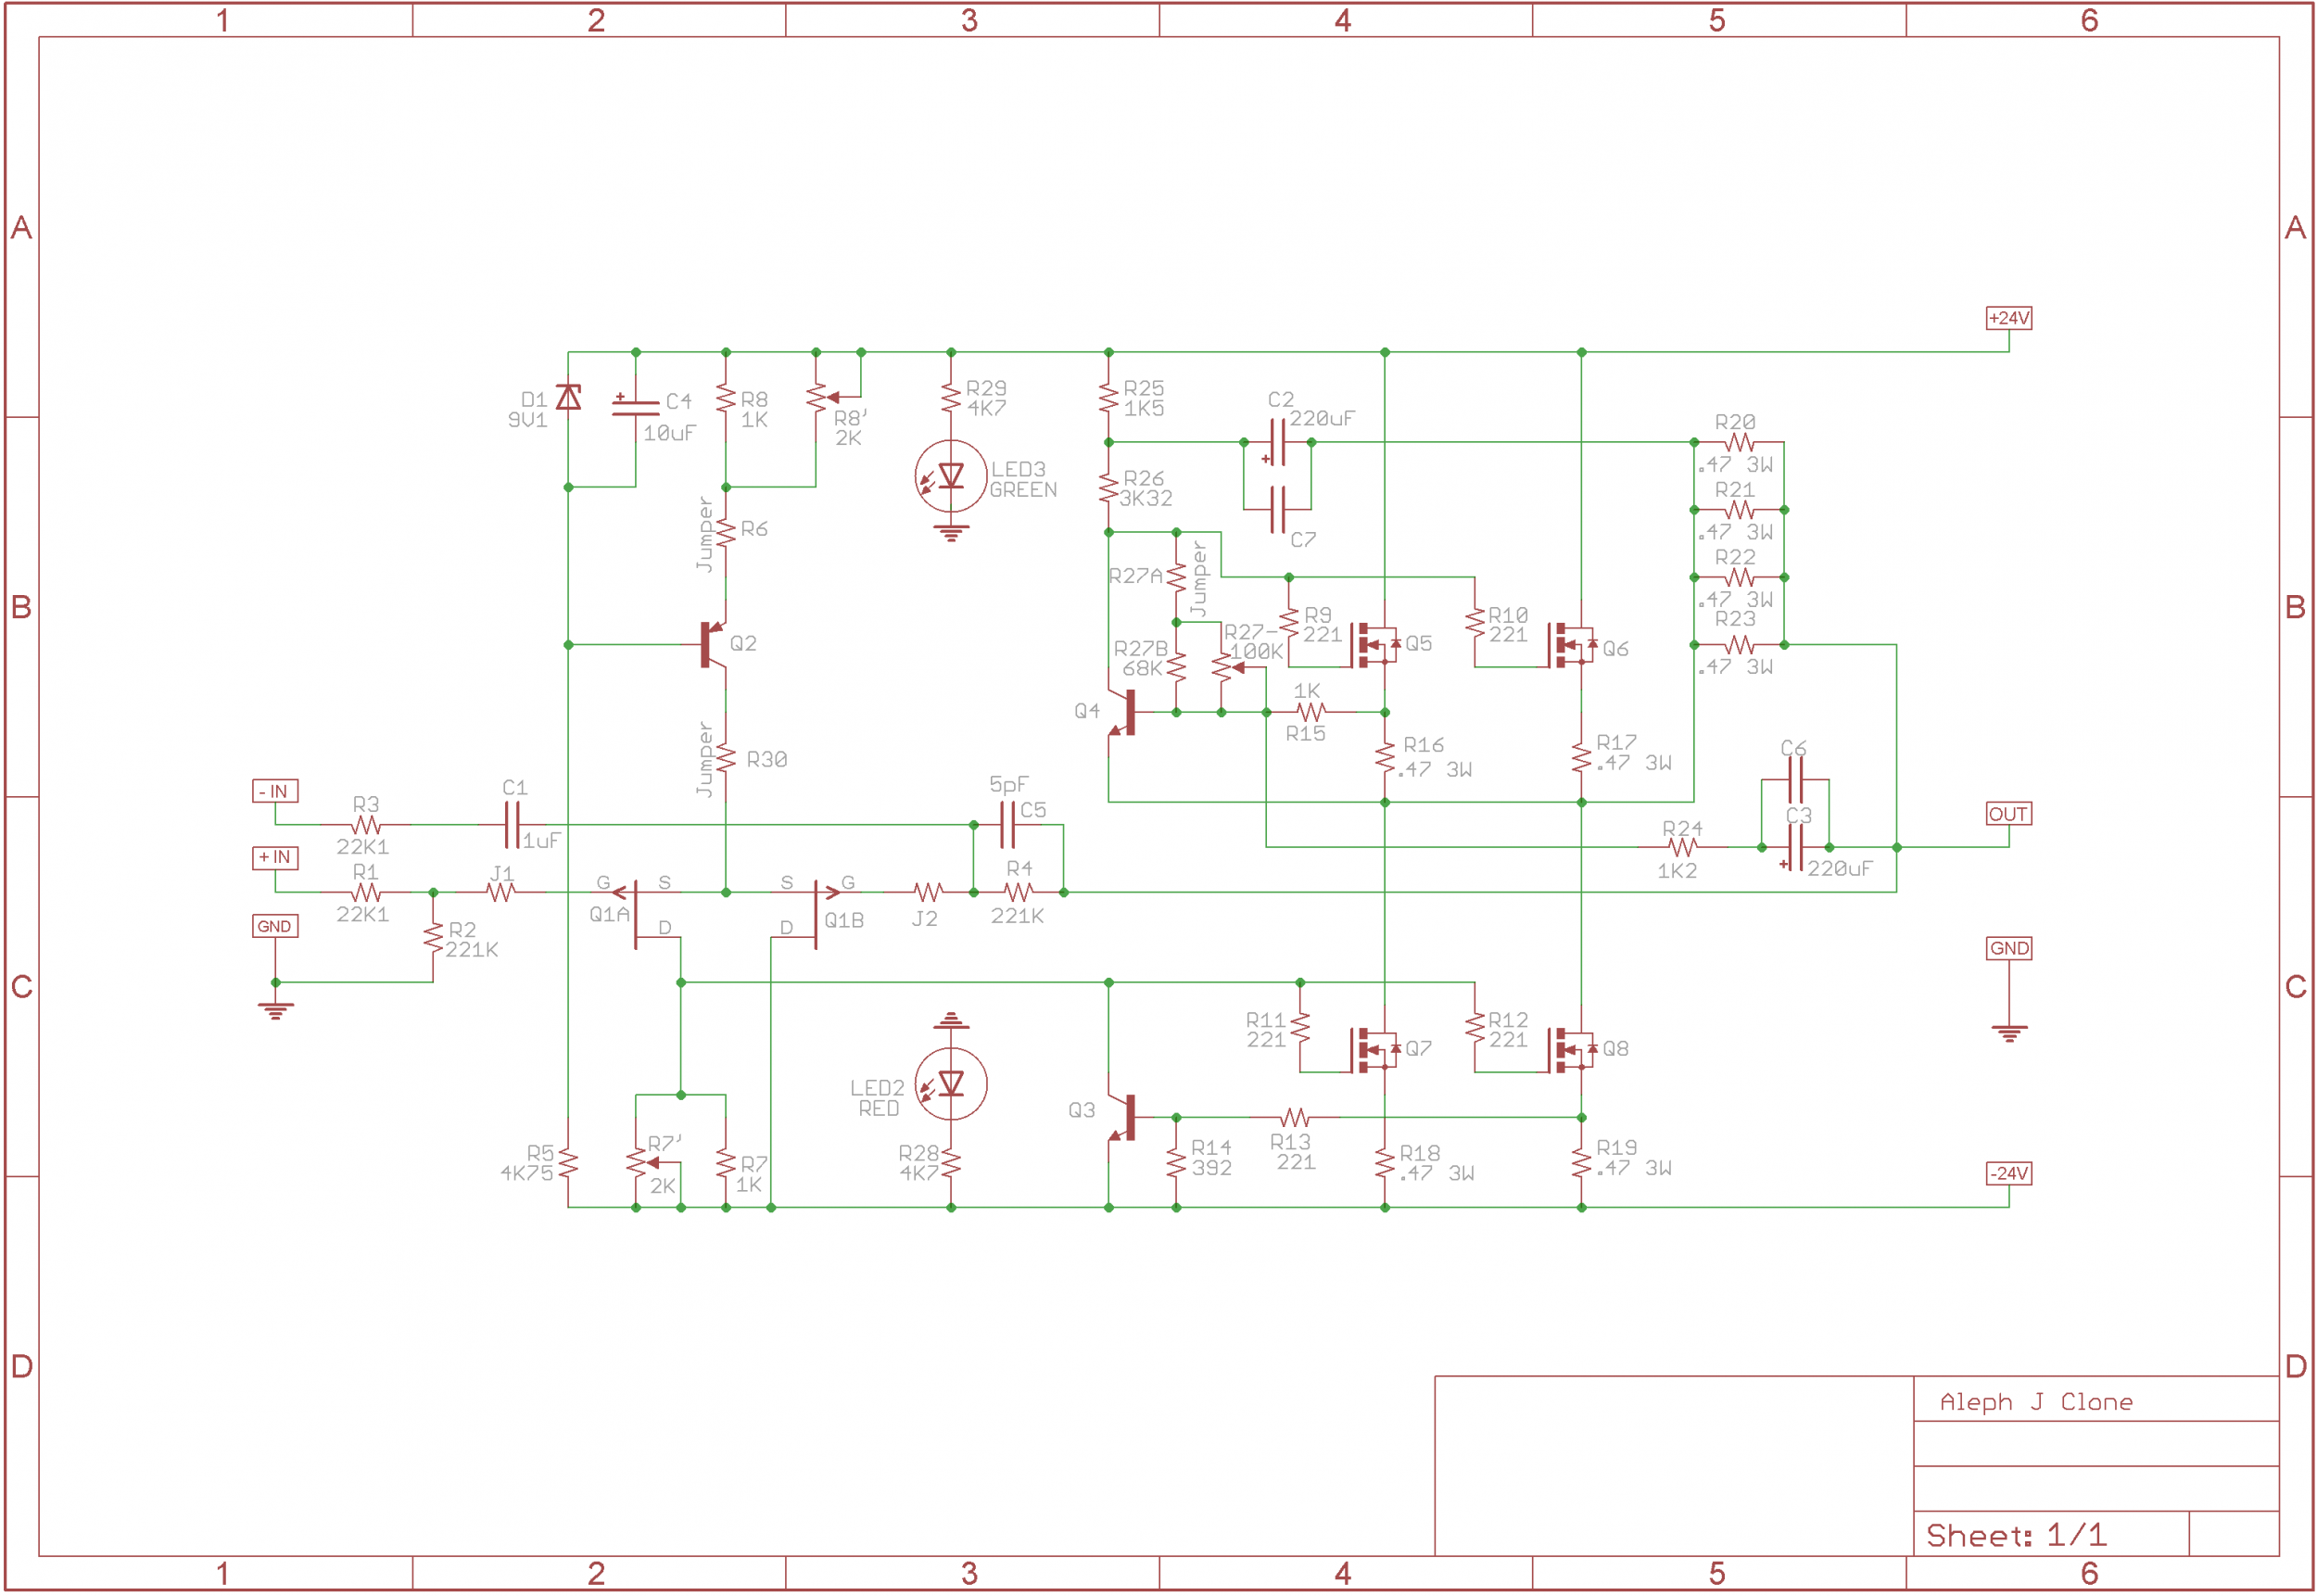 [GJFJ_338]  Aleph J illustrated build guide - diyAudio | Aleph J Circuit Diagram |  | diyAudio